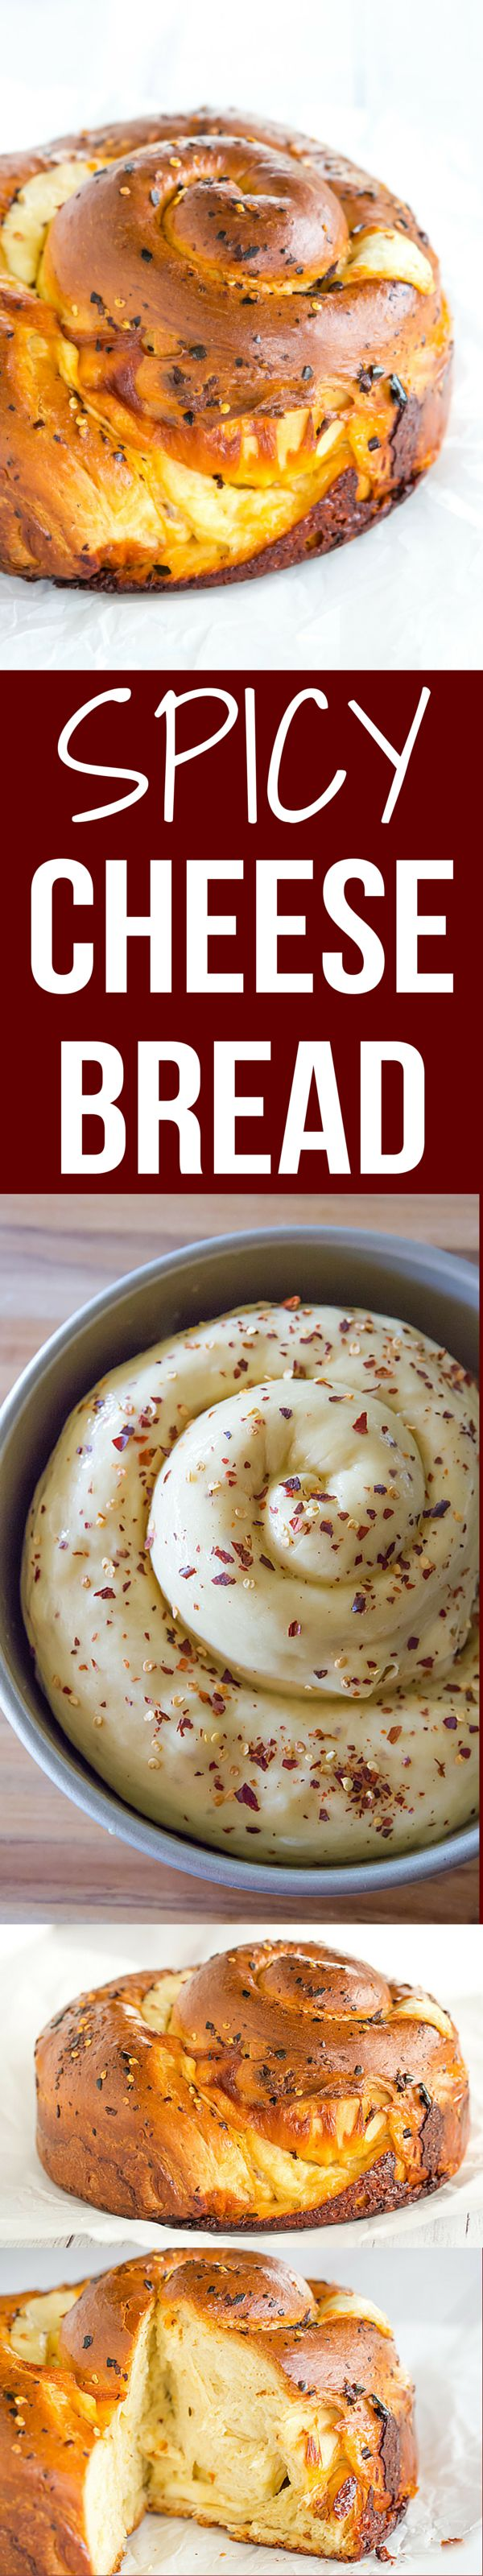 Spicy Cheese Bread - This recipe makes a huge loaf of a rich brioche-like bread loaded with provolone and Monterey Jack cheeses, and speckled with crushed red pepper flakes.   browneyedbaker.com